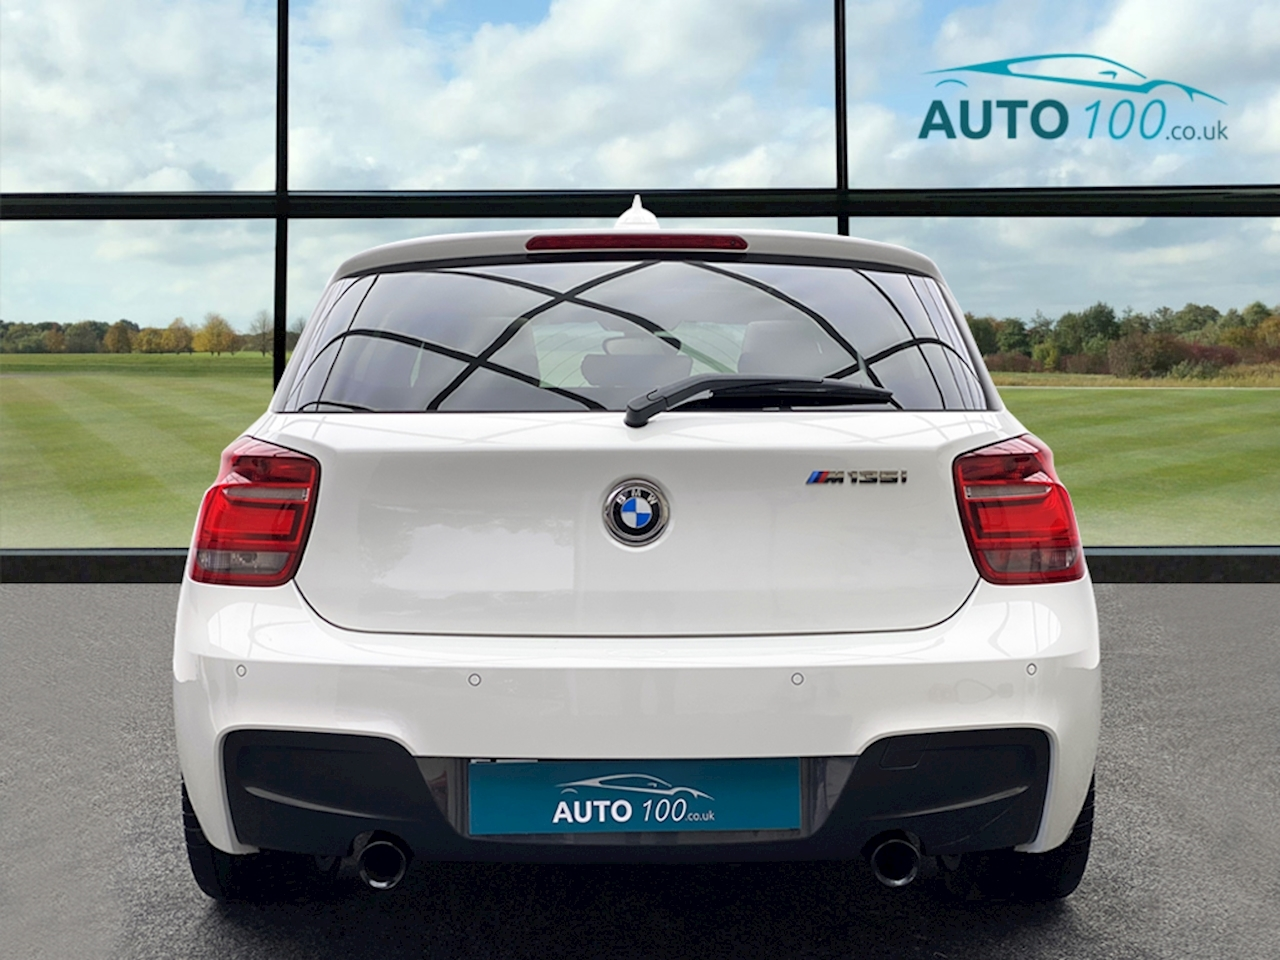 BMW 1 Series M135i Hatchback 3.0 Automatic Petrol